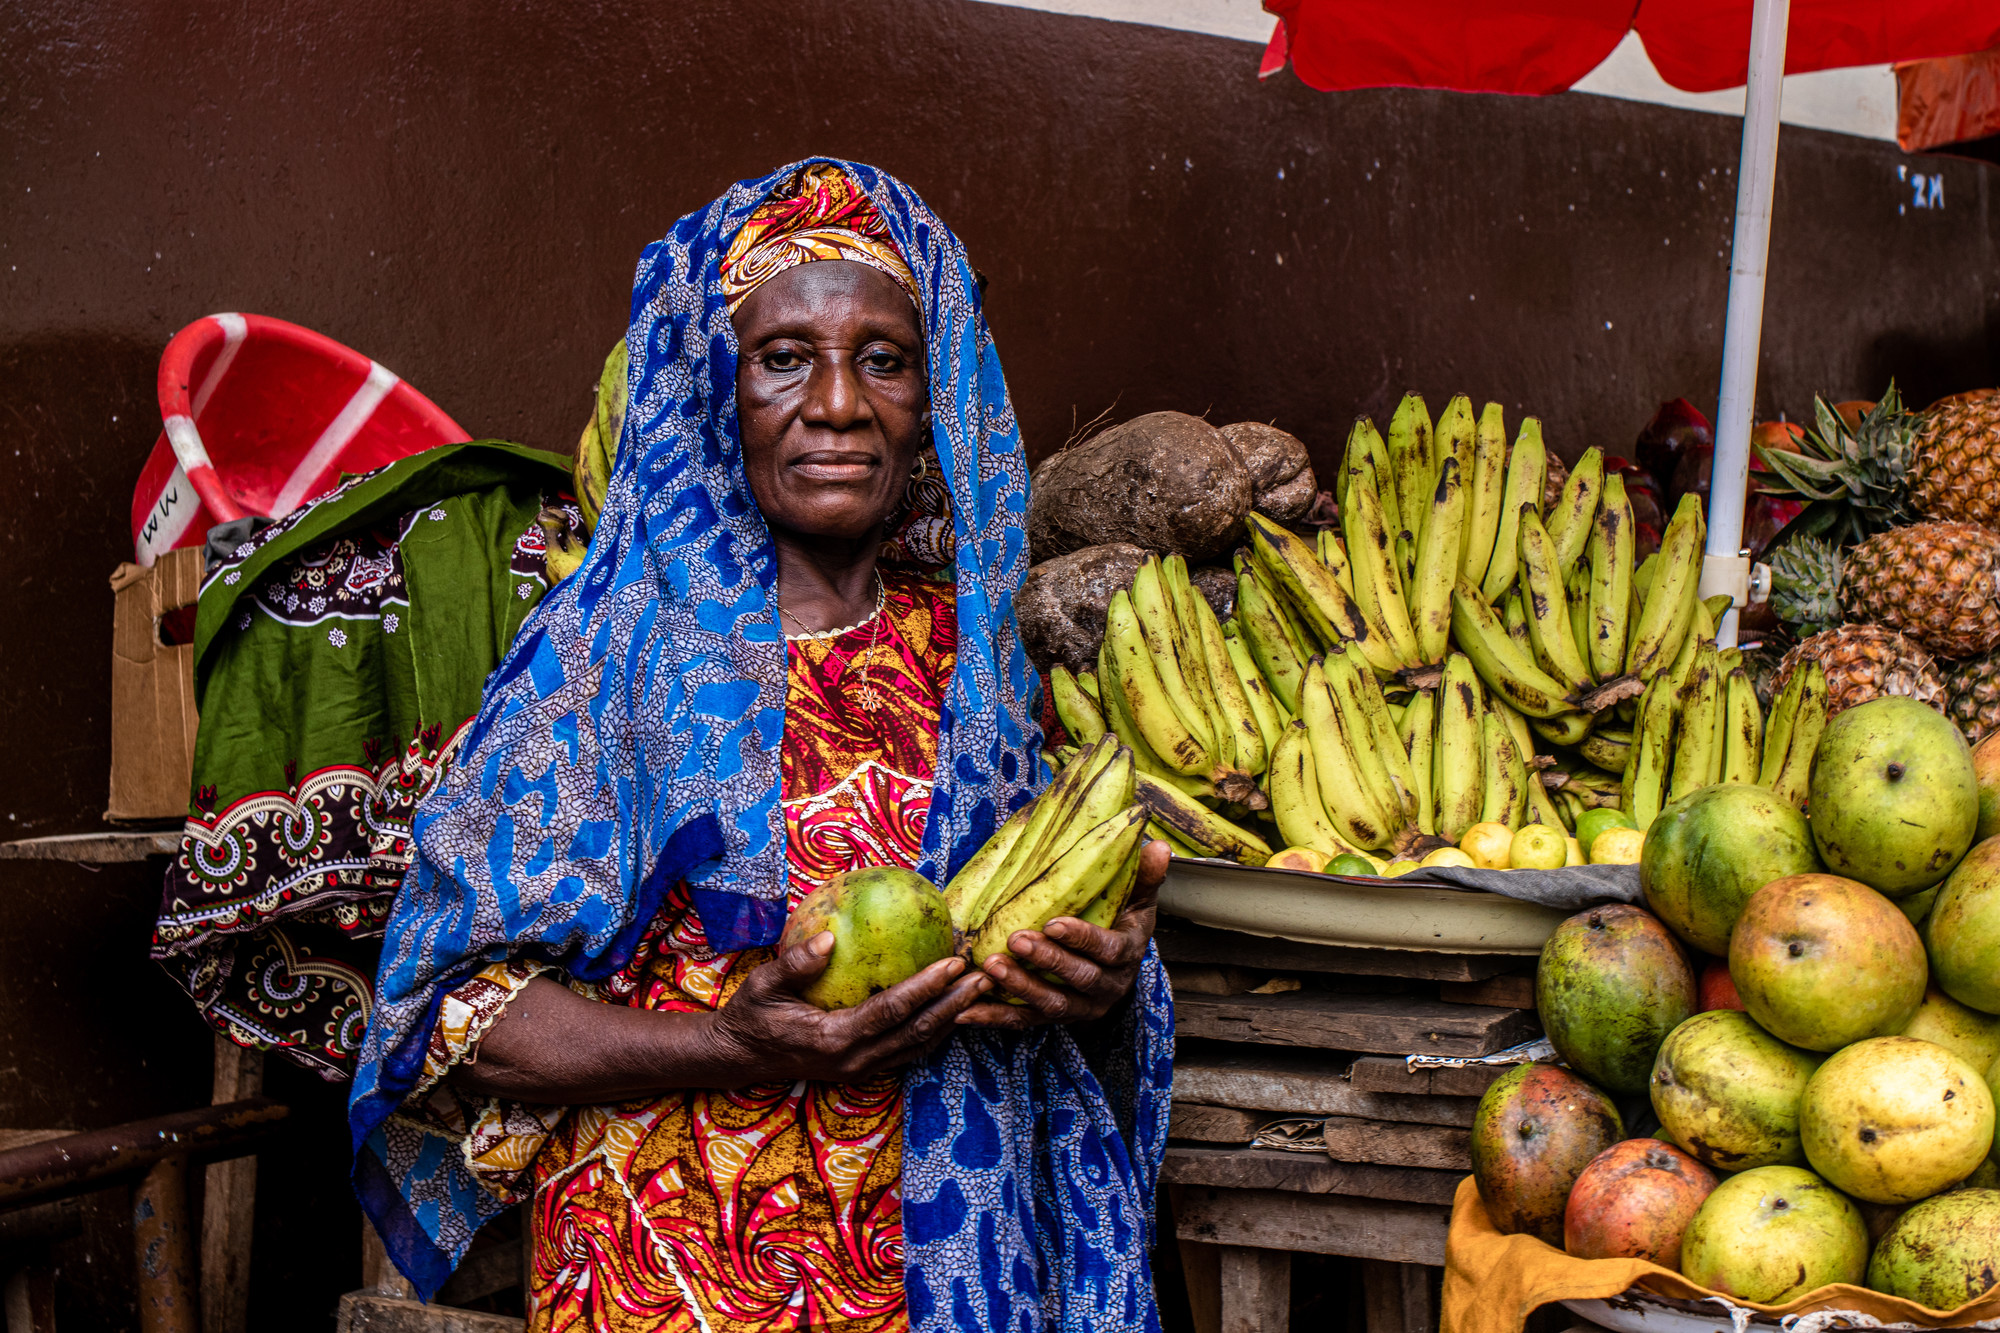 A woman at a fruit stand holds bananas and other fruits.